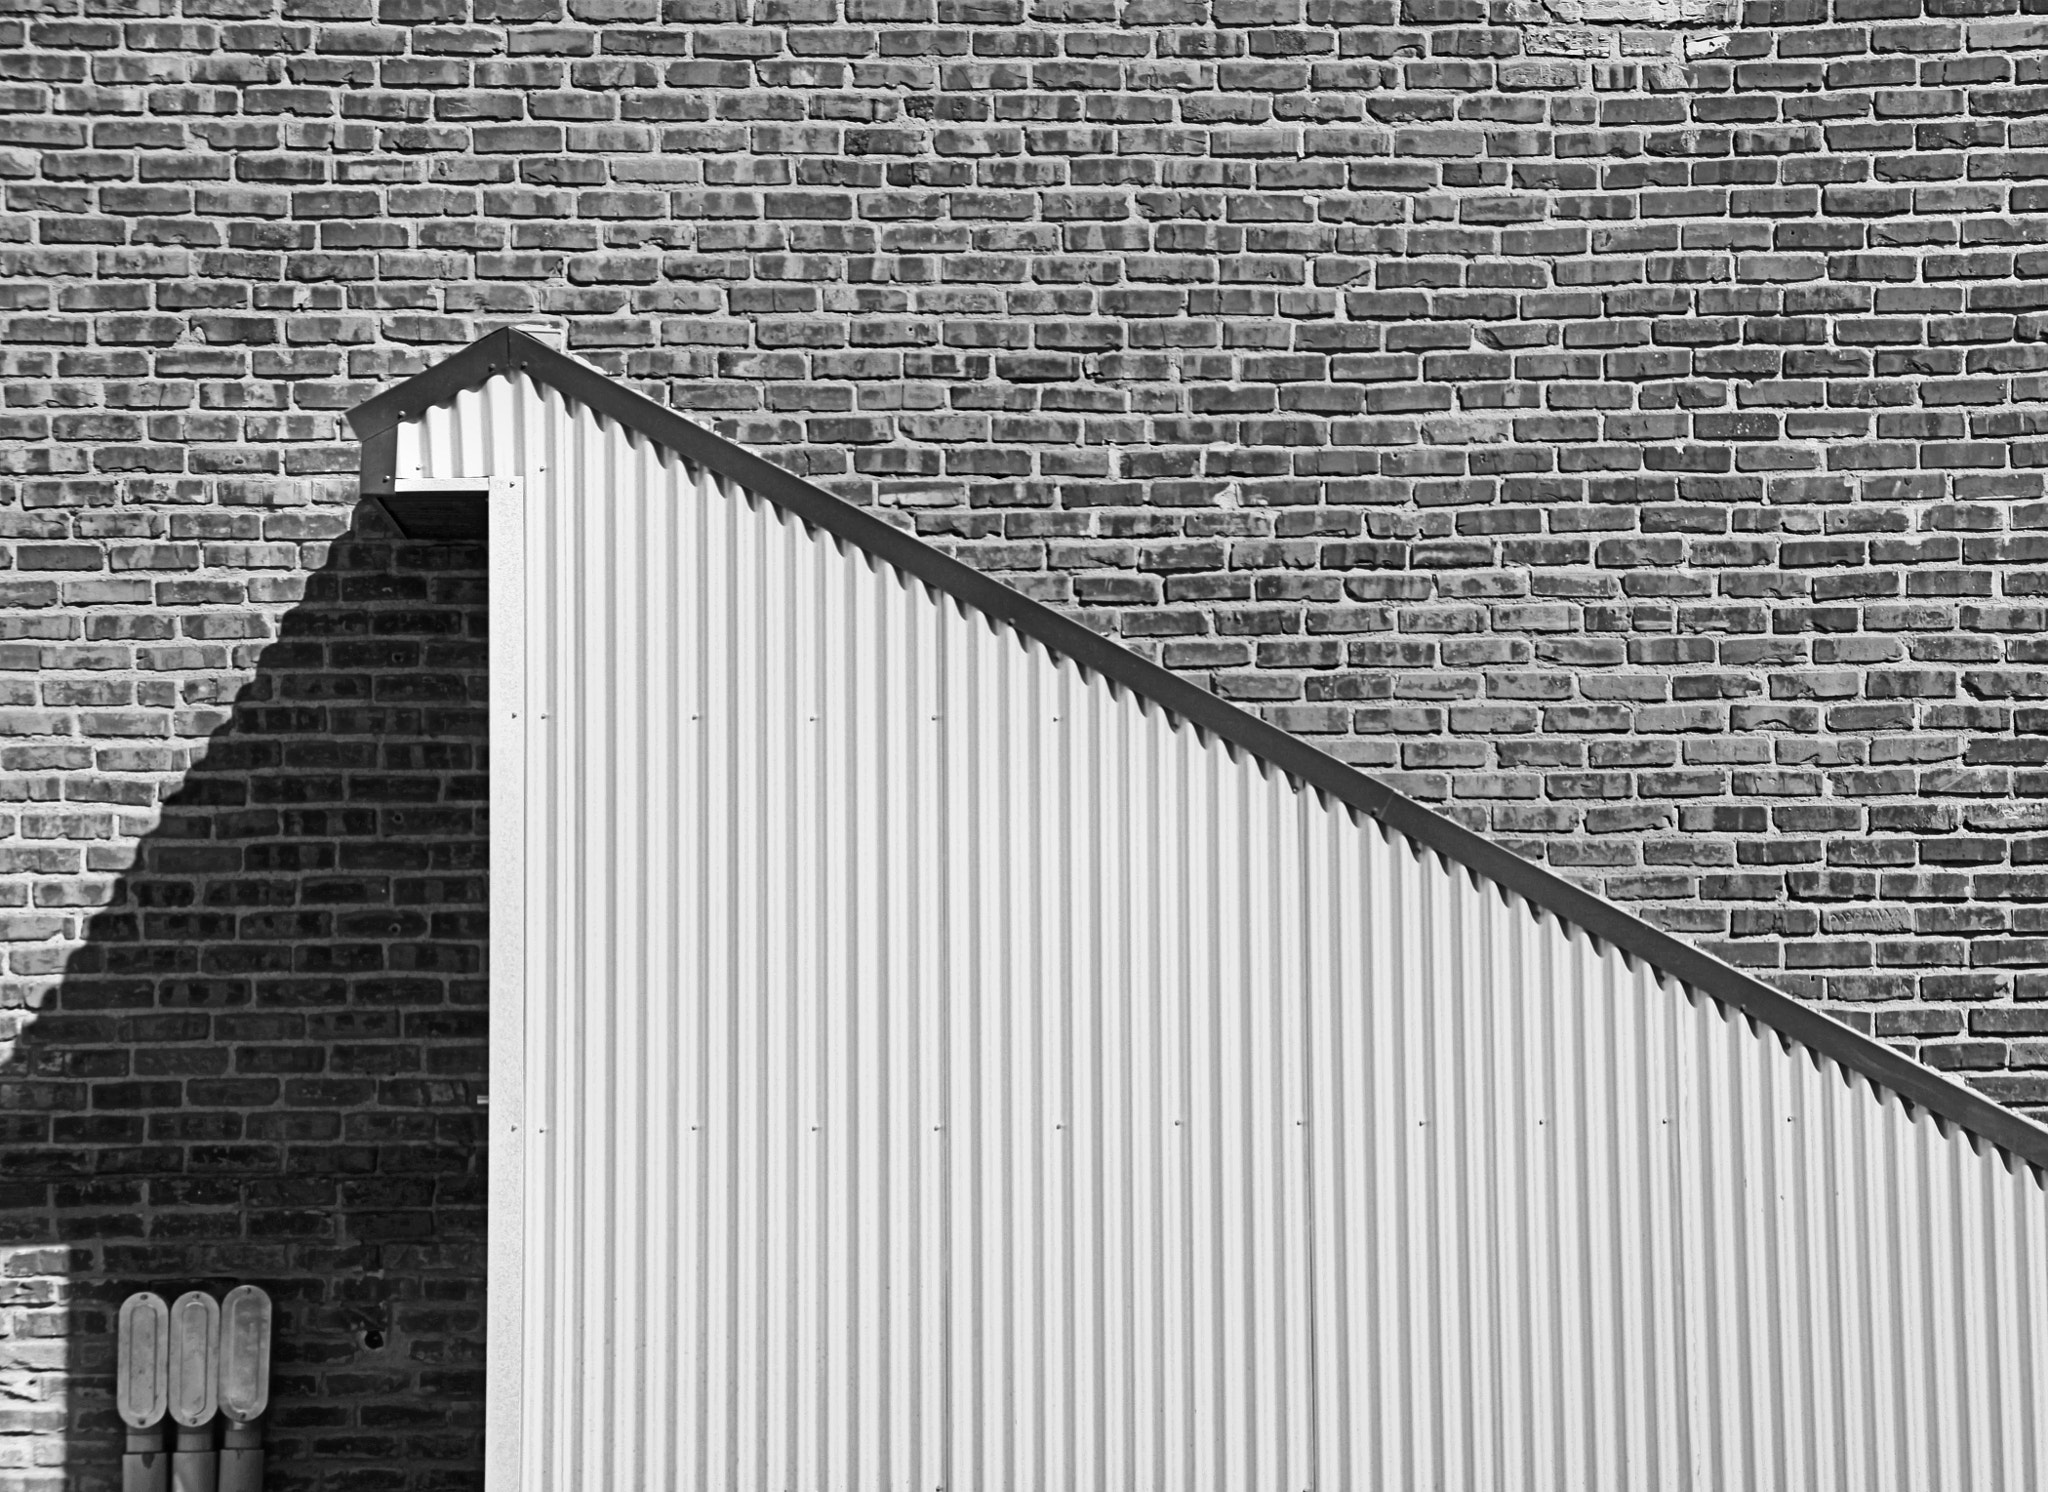 Photograph corrugated slant by Ron Quick on 500px